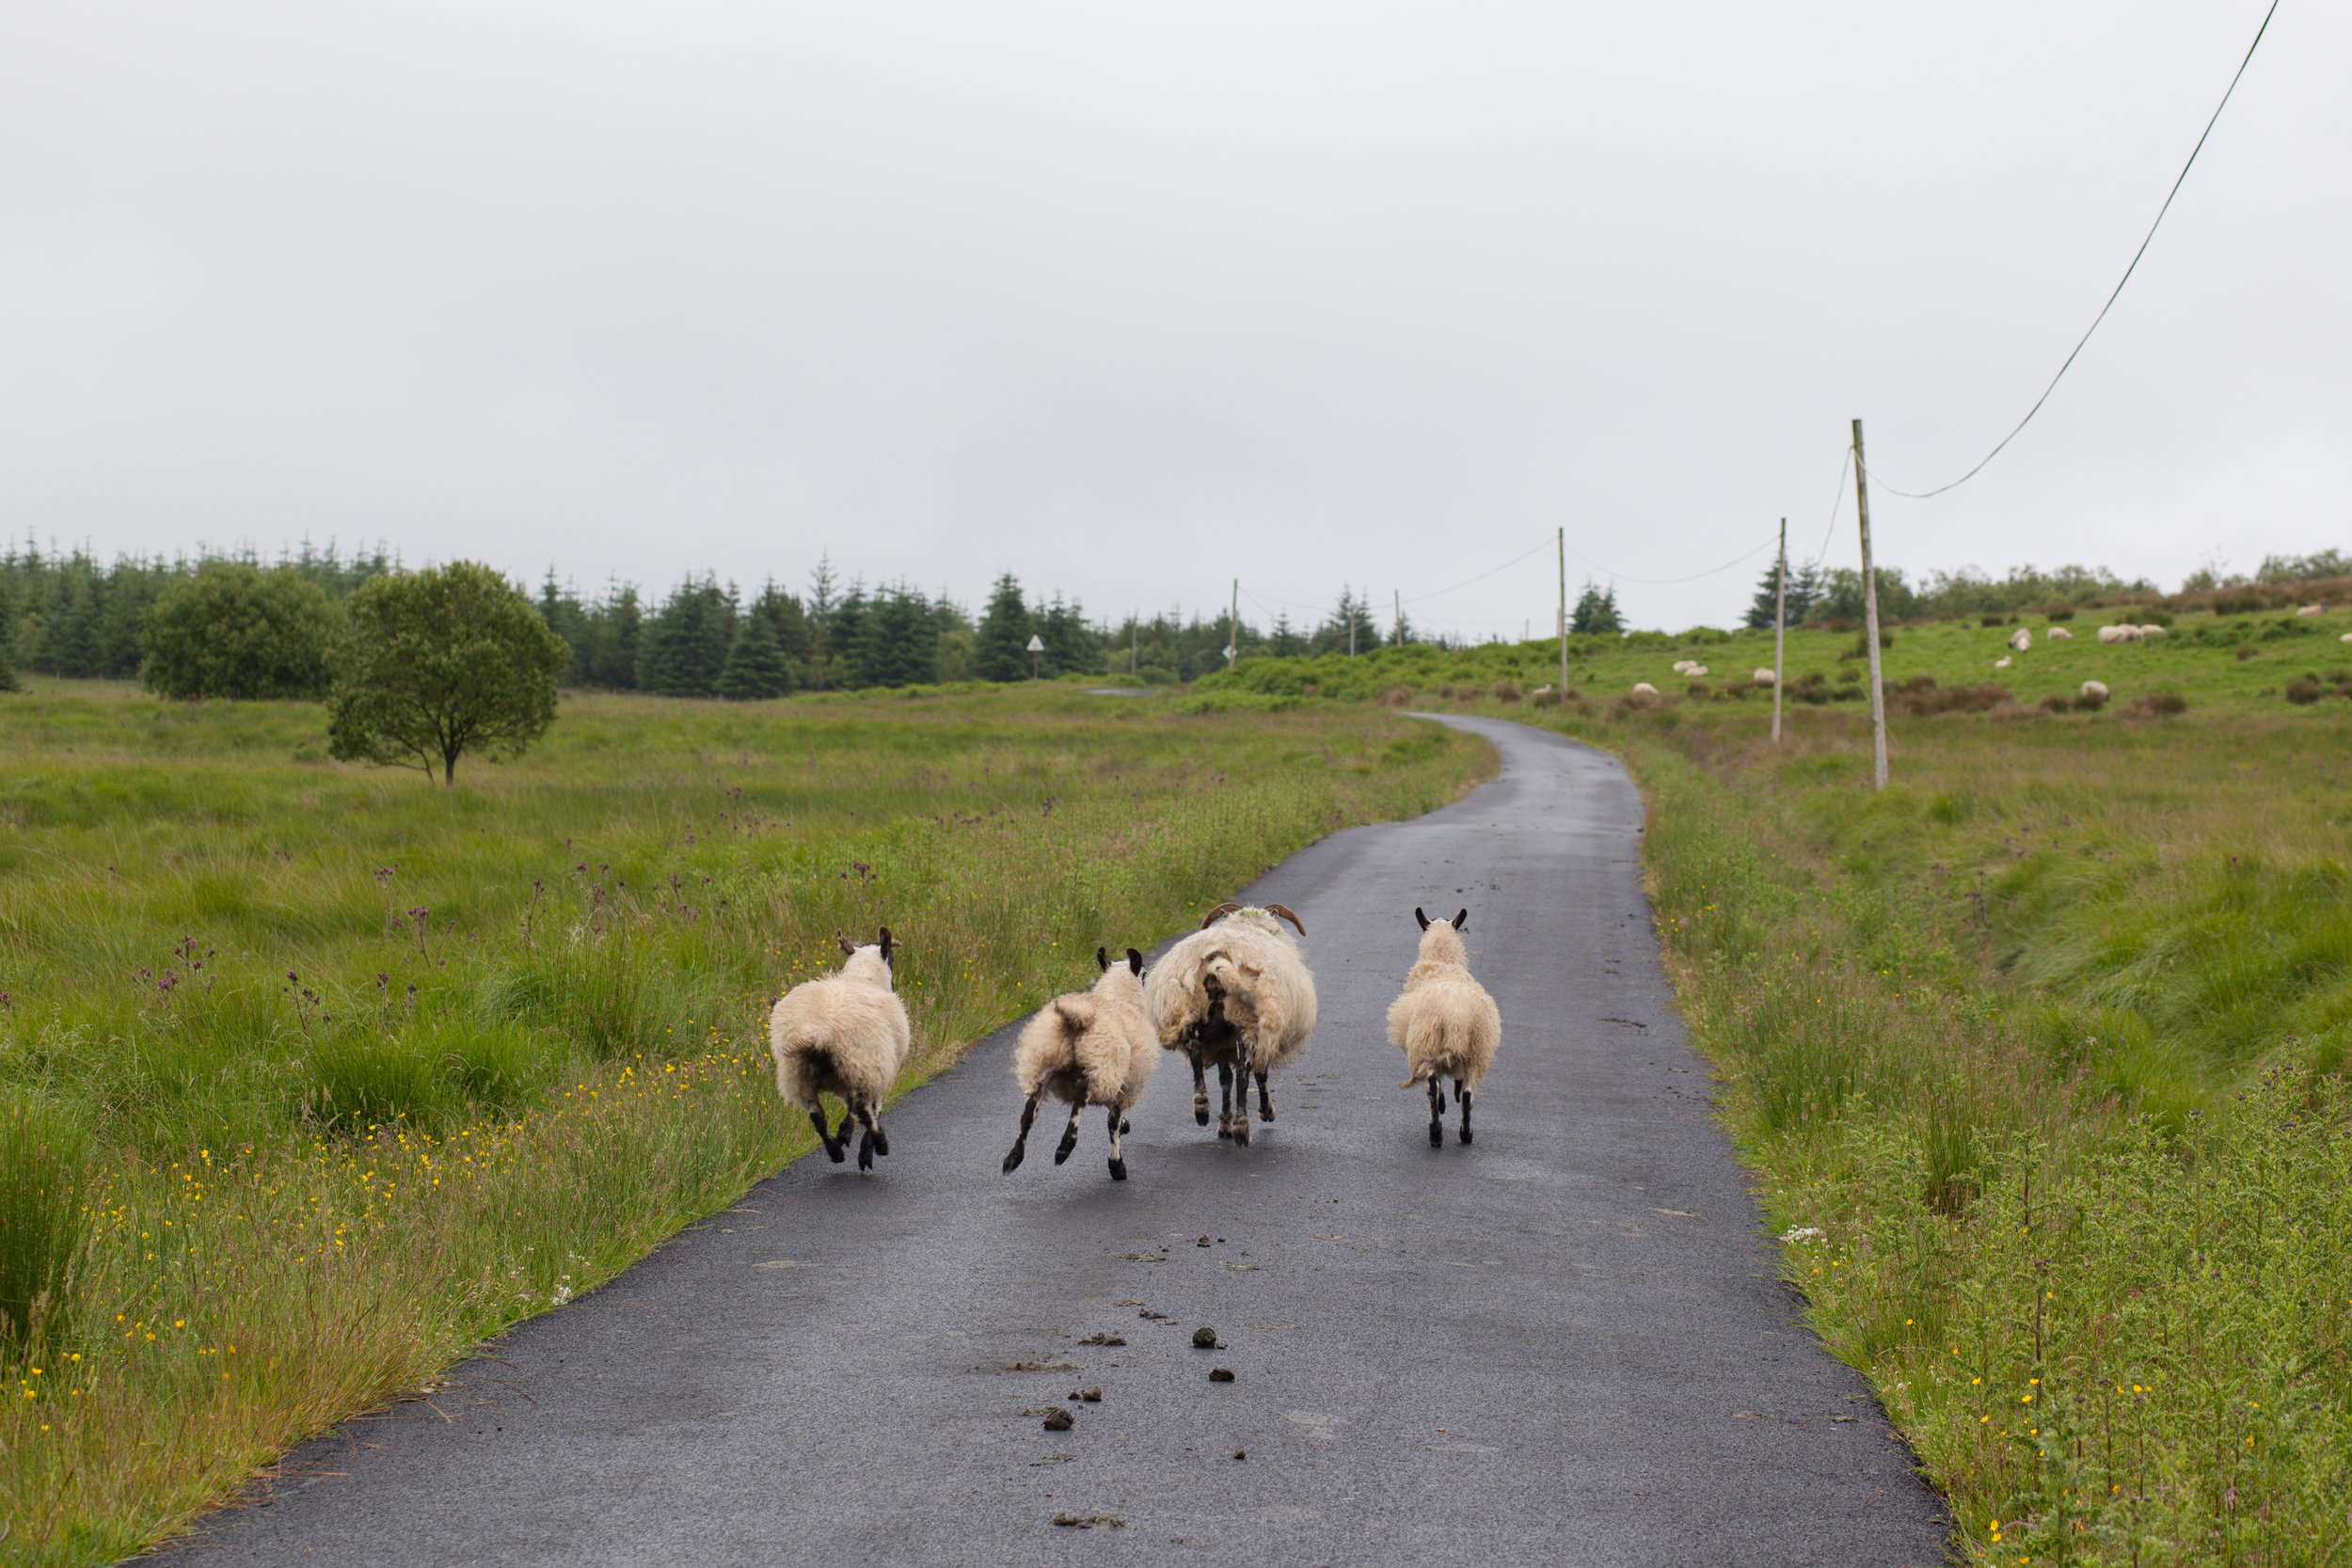 A family of sheep run along a road in Scotland.